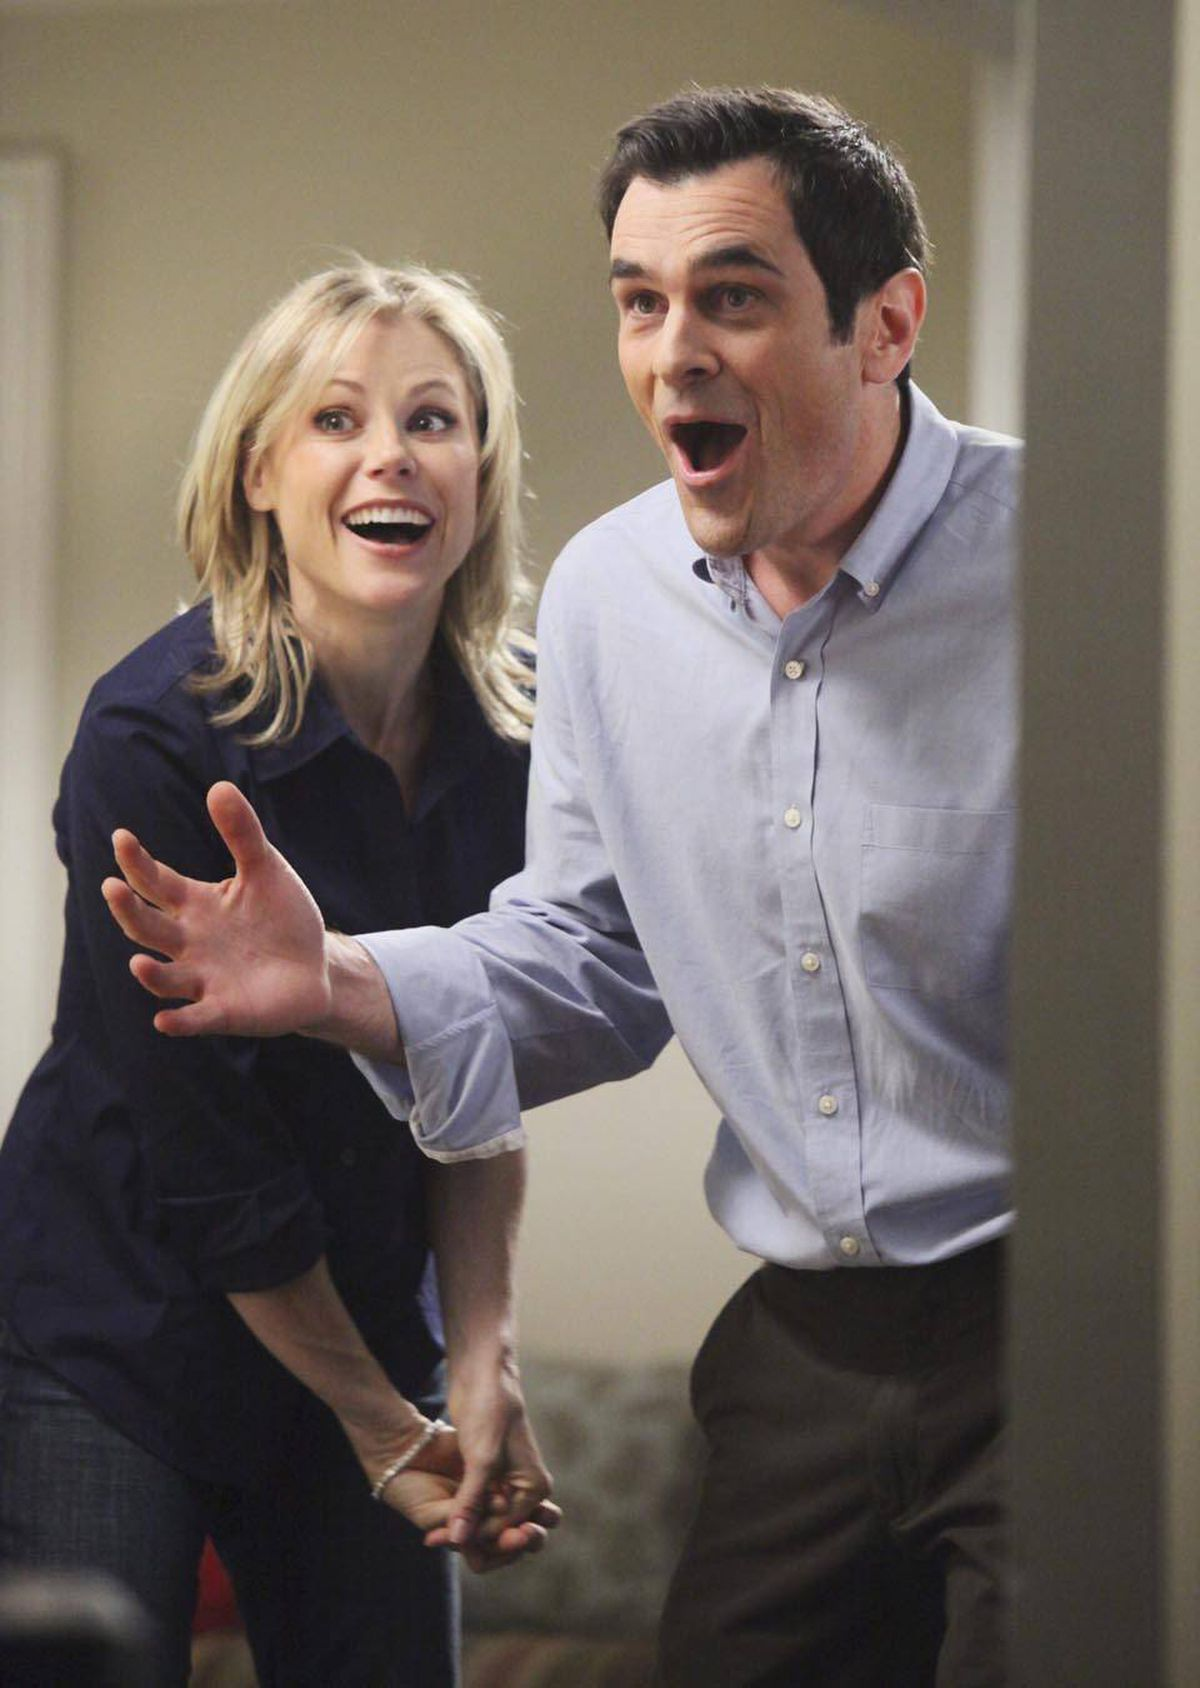 Modern Family stars Julie Bowen and Ty Burrell talk about the awesome star power they'll be bringing to the 2012 Billboard Music Awards.